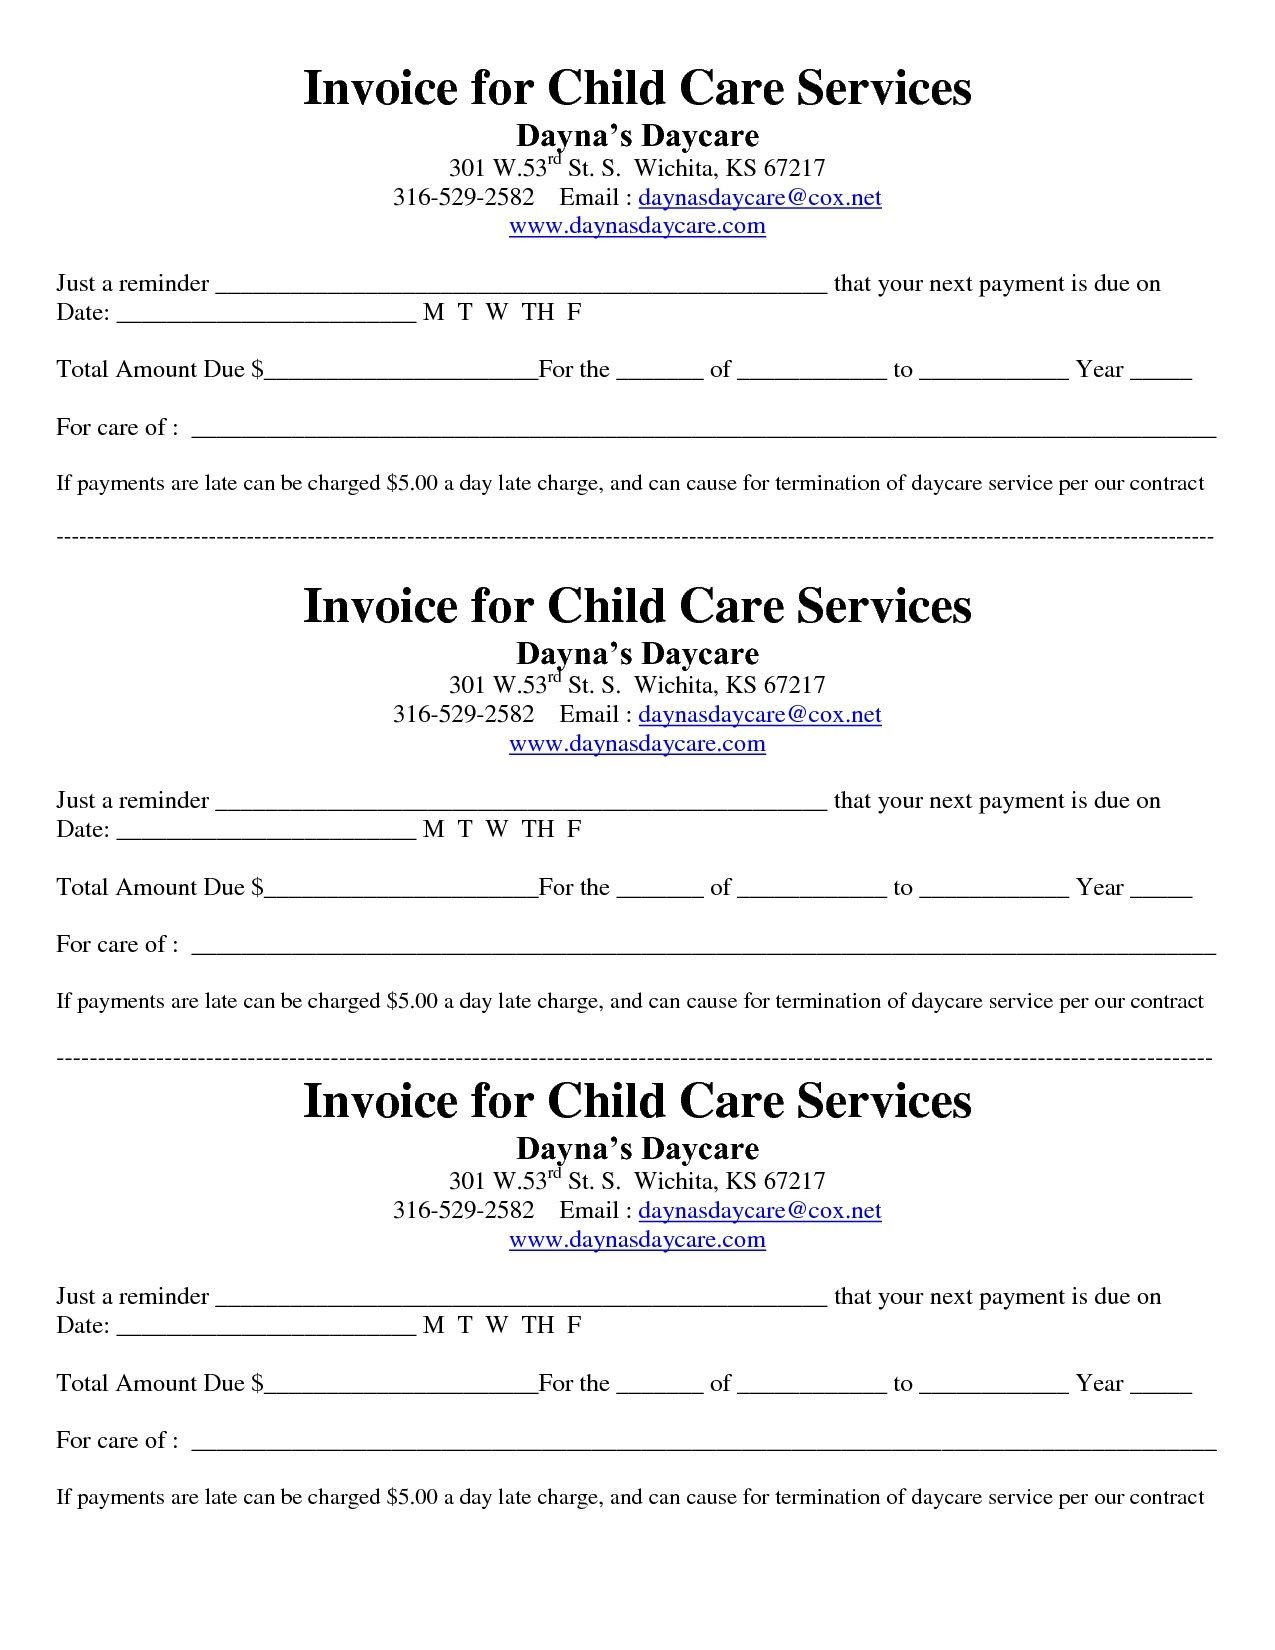 Child Care Receipt Template Child Care Receipt Invoice Jordi Preschool